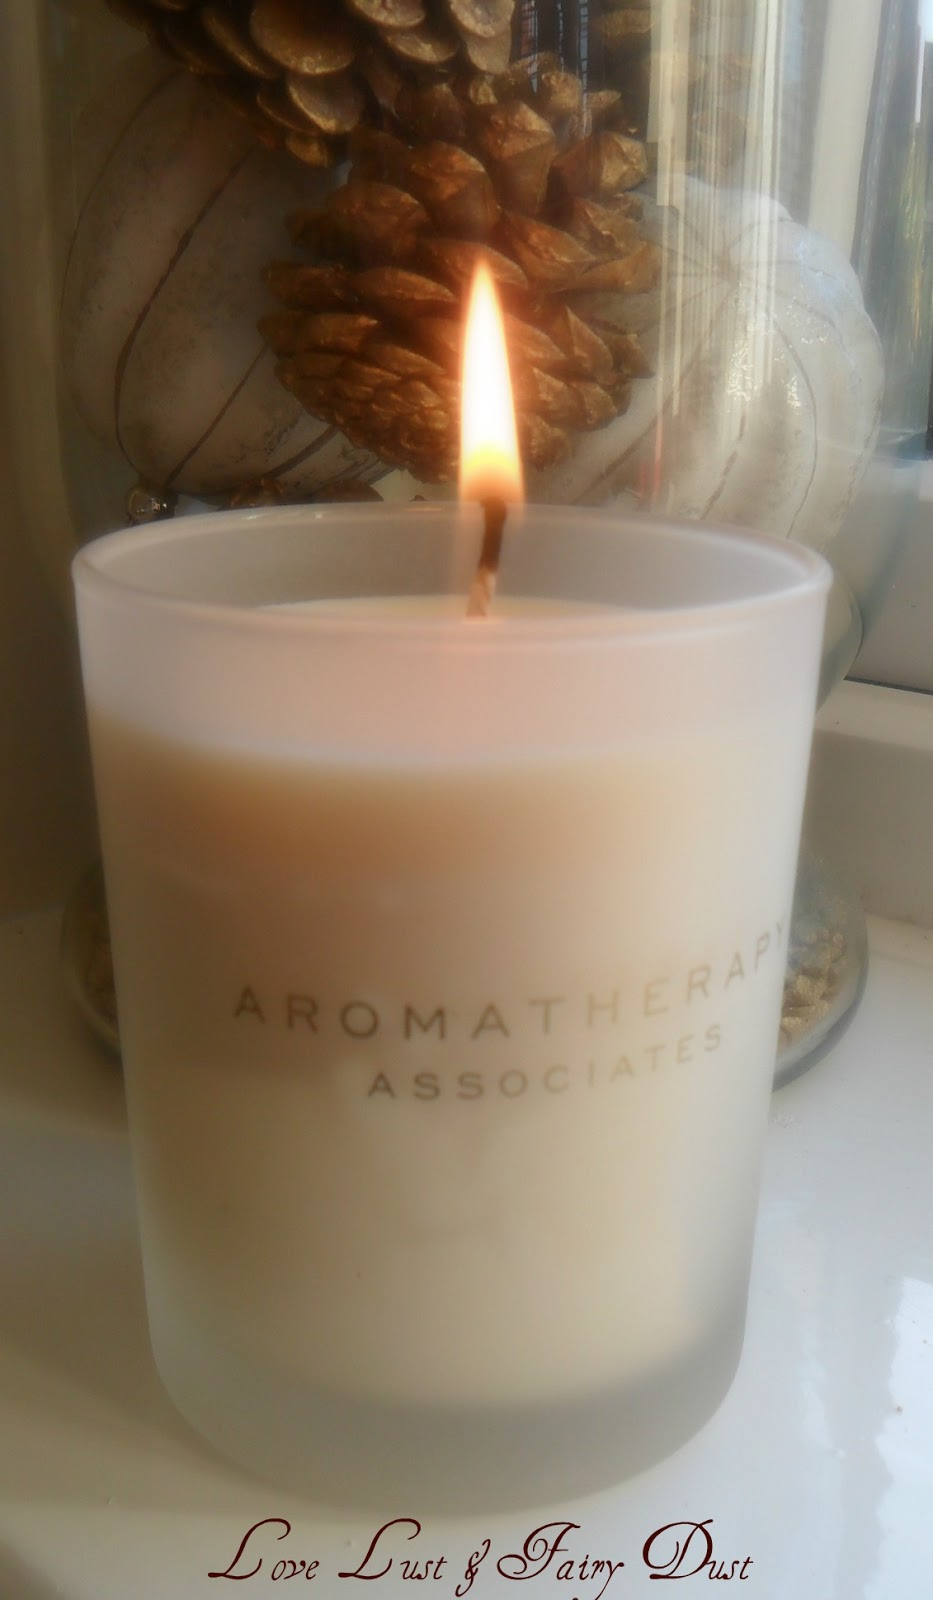 candle from aromatherapy associates